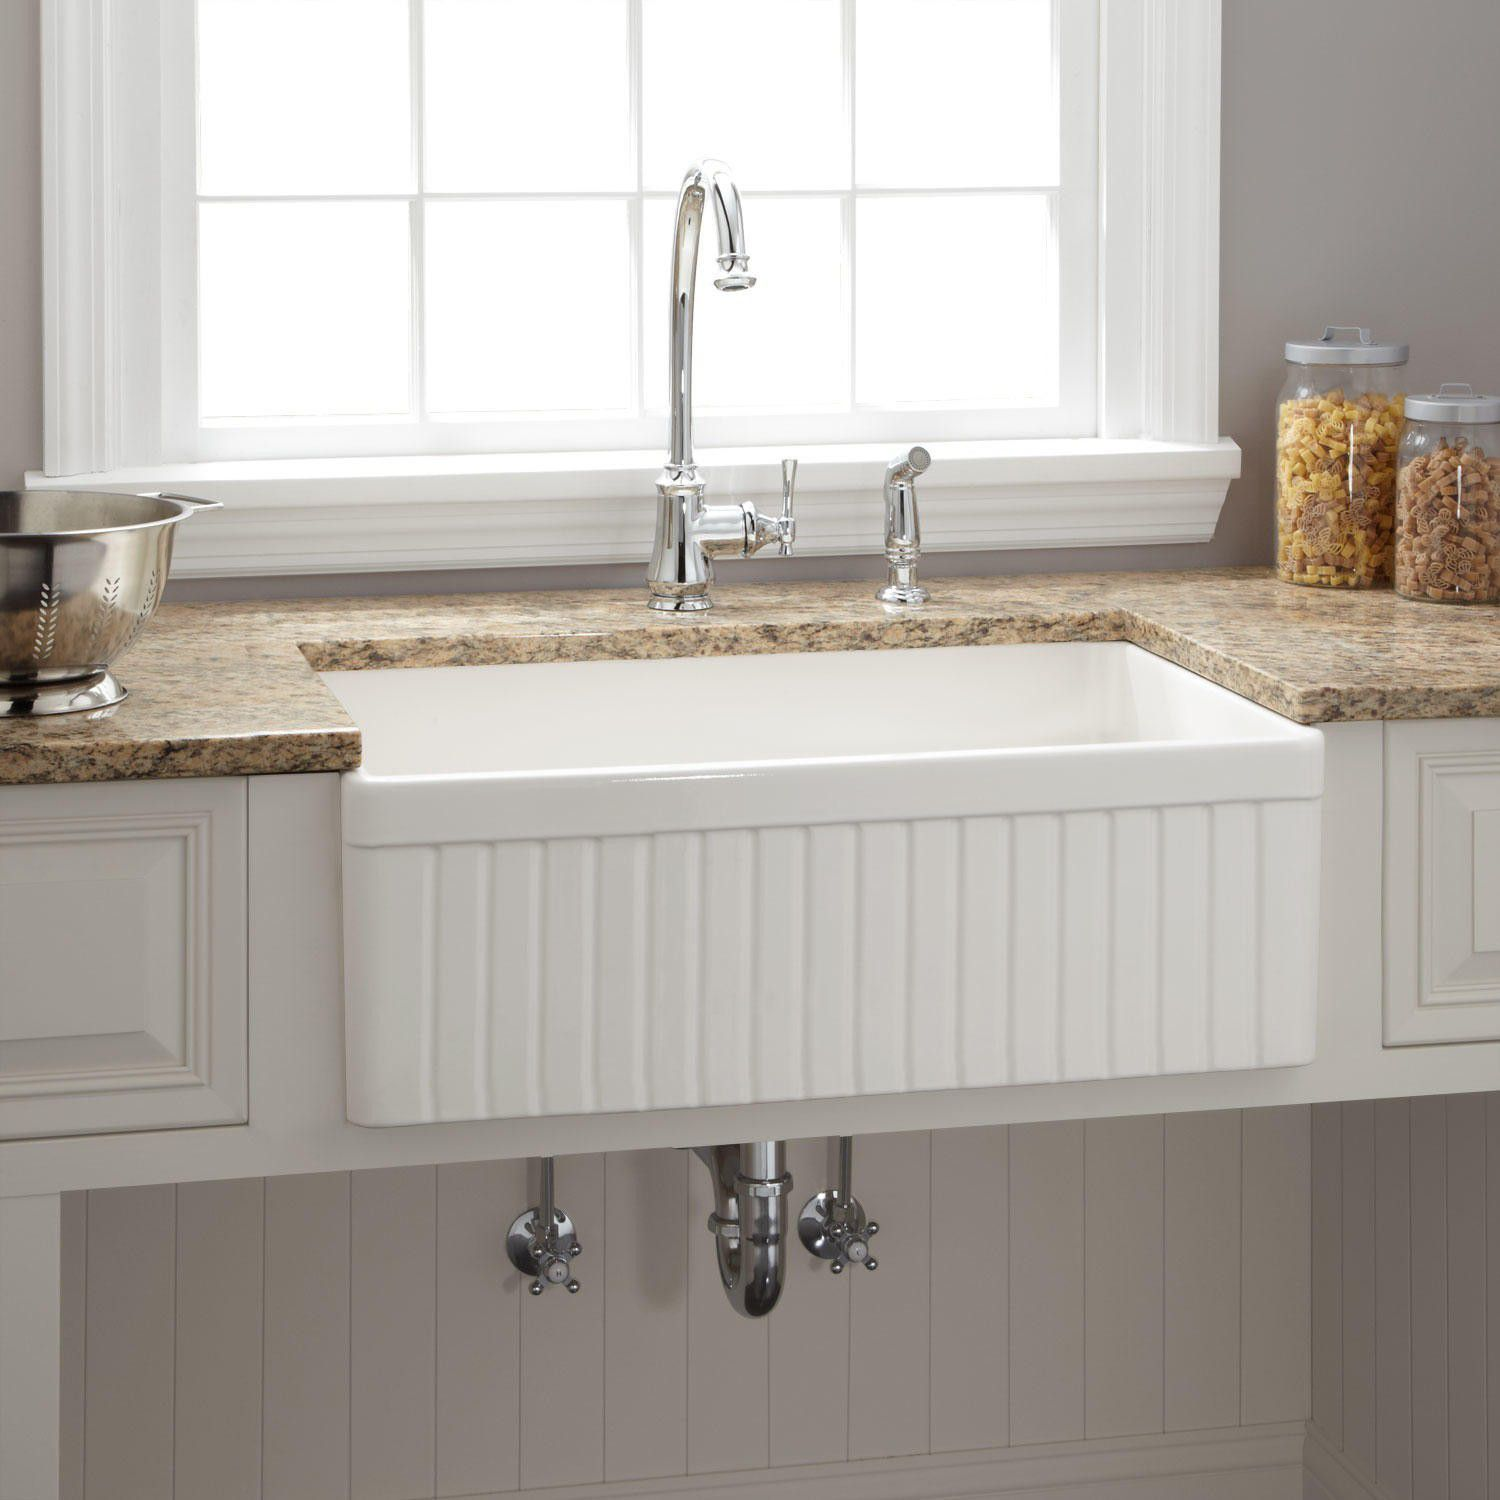 8 Farmhouse Sinks That Turn On The Modern Rustic Charm With Images Farmhouse Sink Kitchen Fireclay Farmhouse Sink Kitchen Sink Design